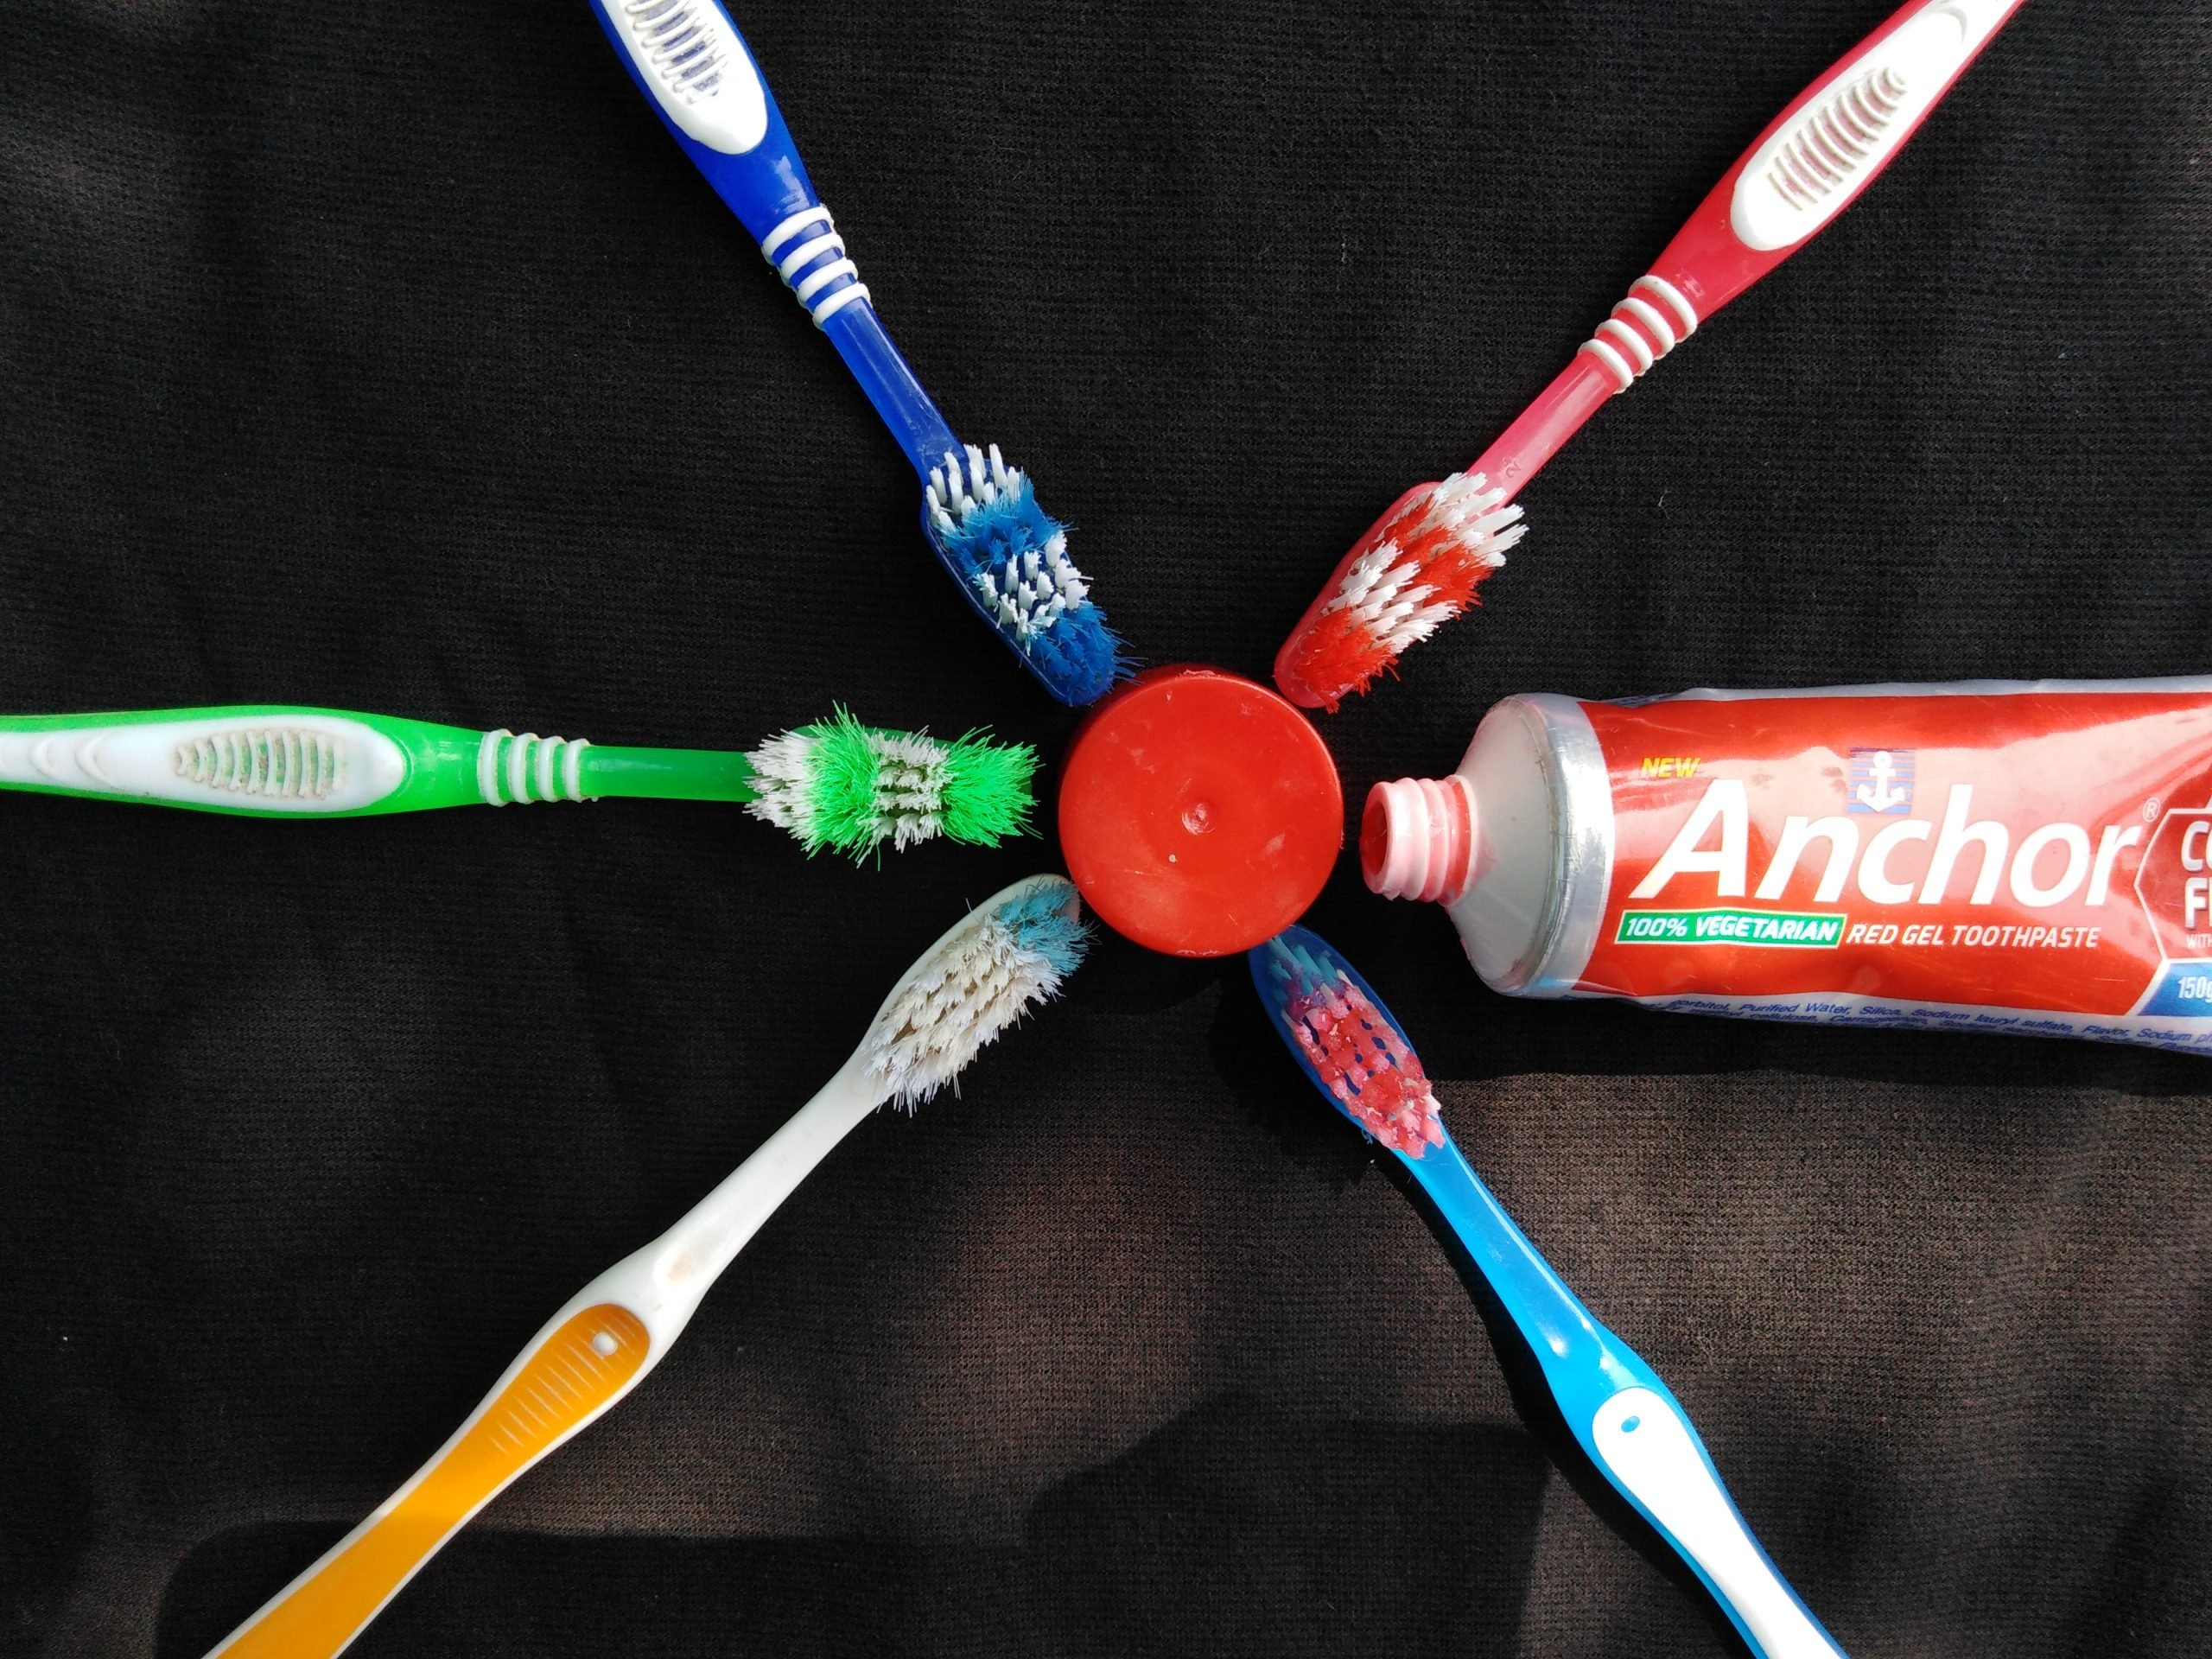 Toothbrushes and paste